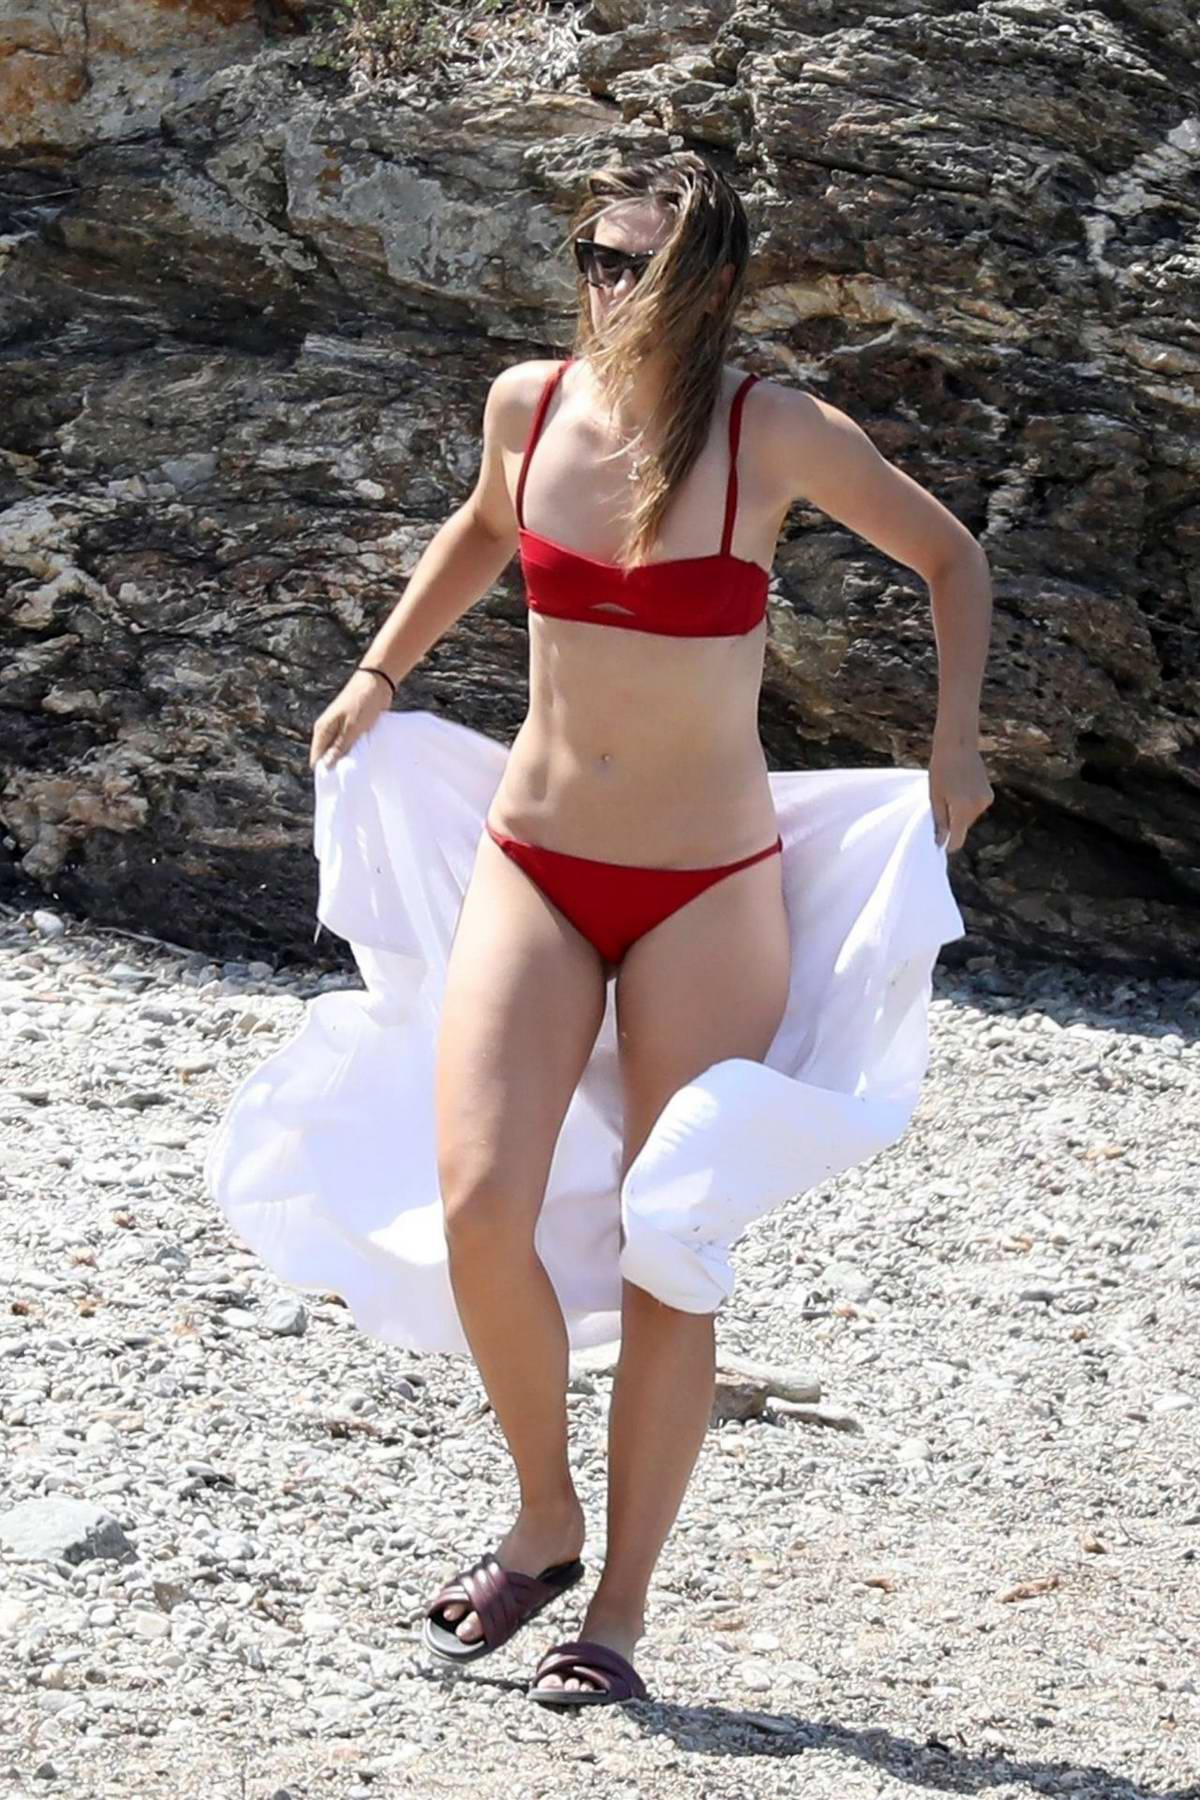 Maria Sharapova spotted in a red bikini while relaxing at the beach in Elba, Italy